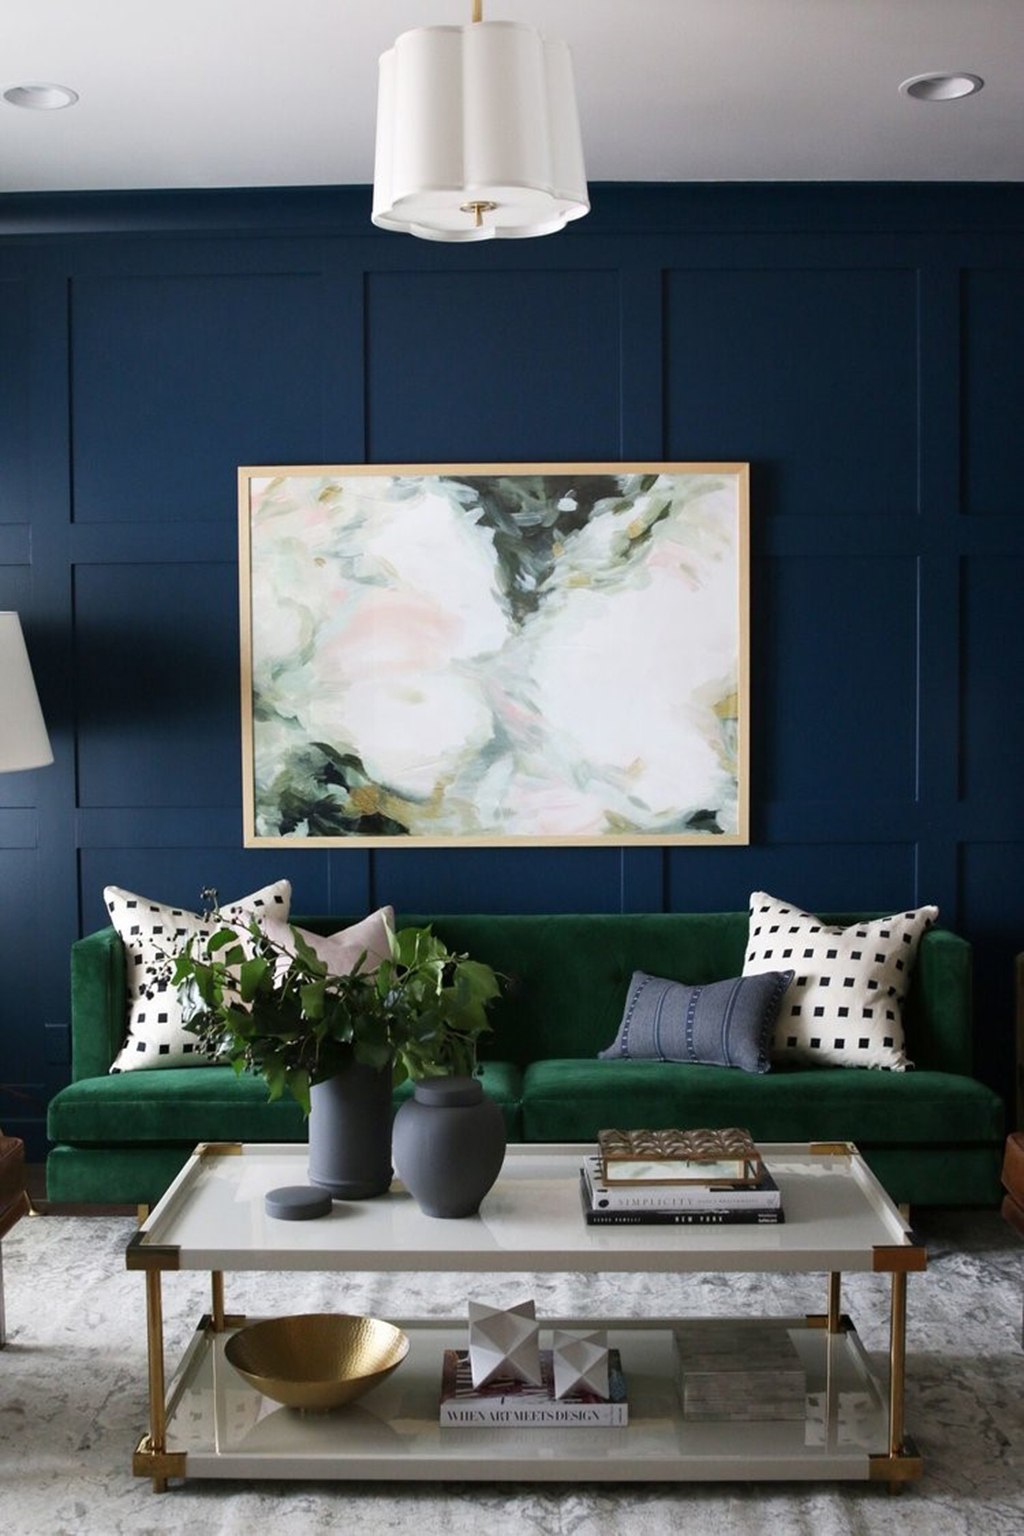 Go bold, or go home. Love this forest green velvet sofa against that regal royal blue wall.